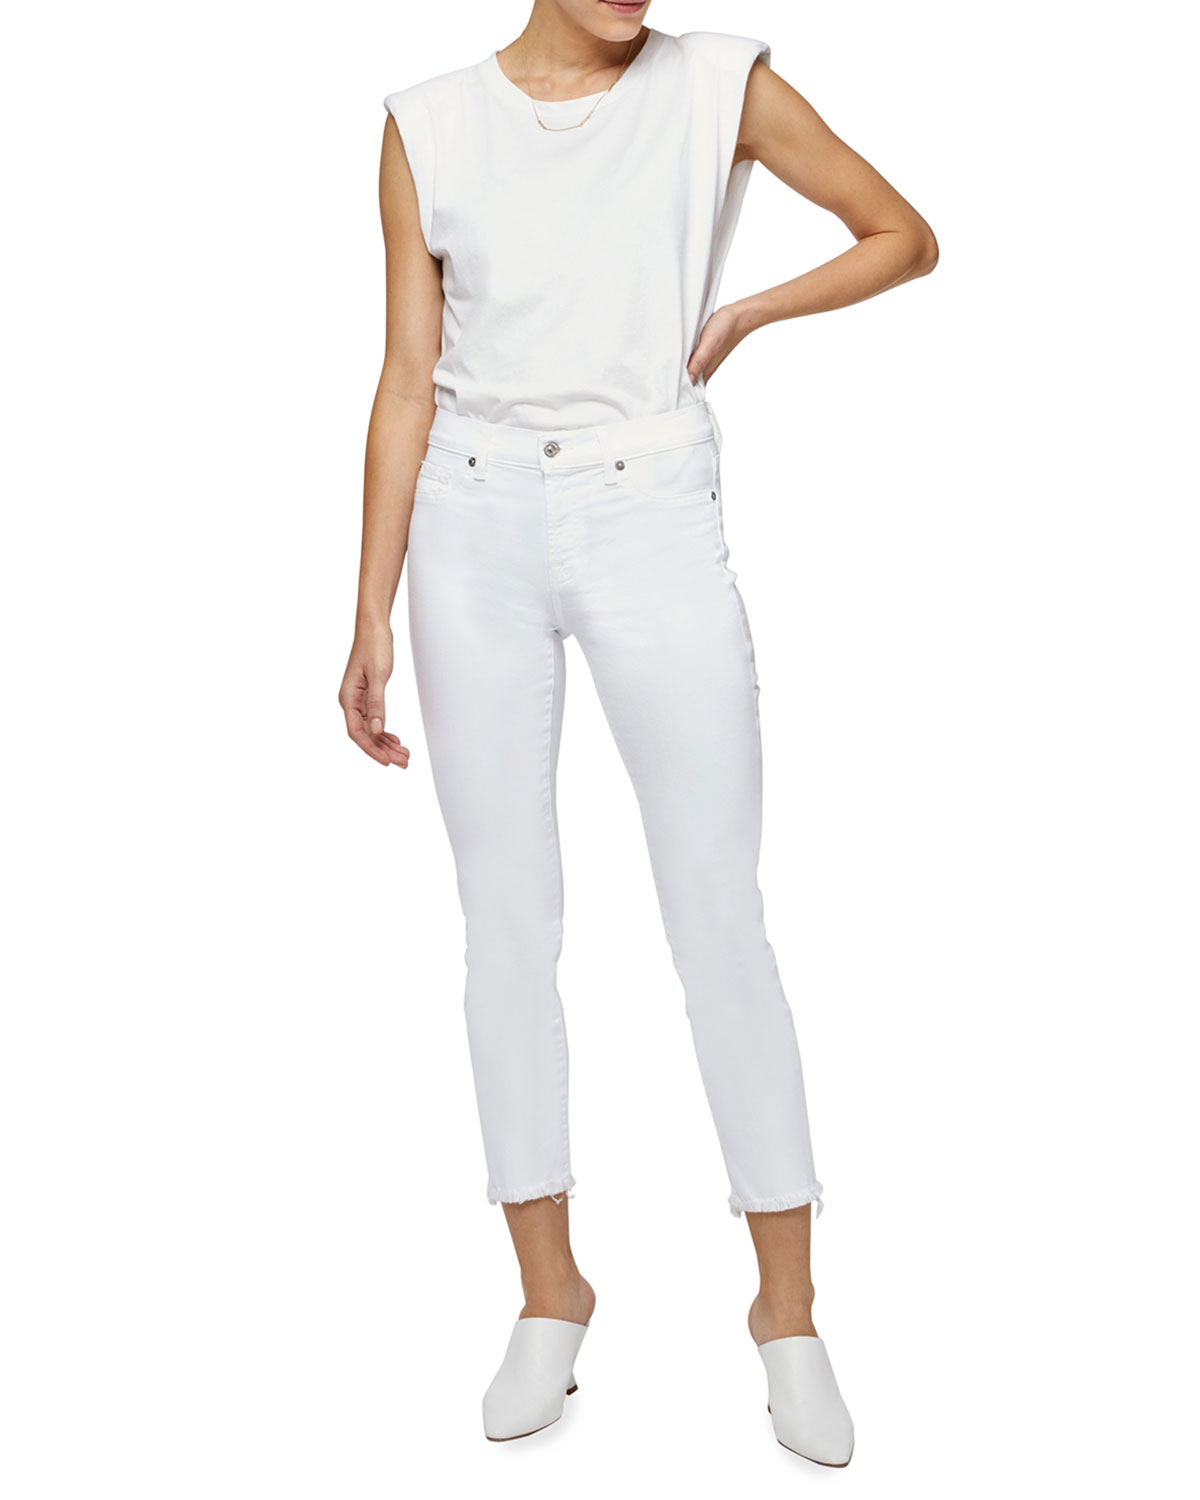 5b78e2ca93 7 for all mankind Roxanne Raw-Edge Ankle Skinny Jeans, White ...